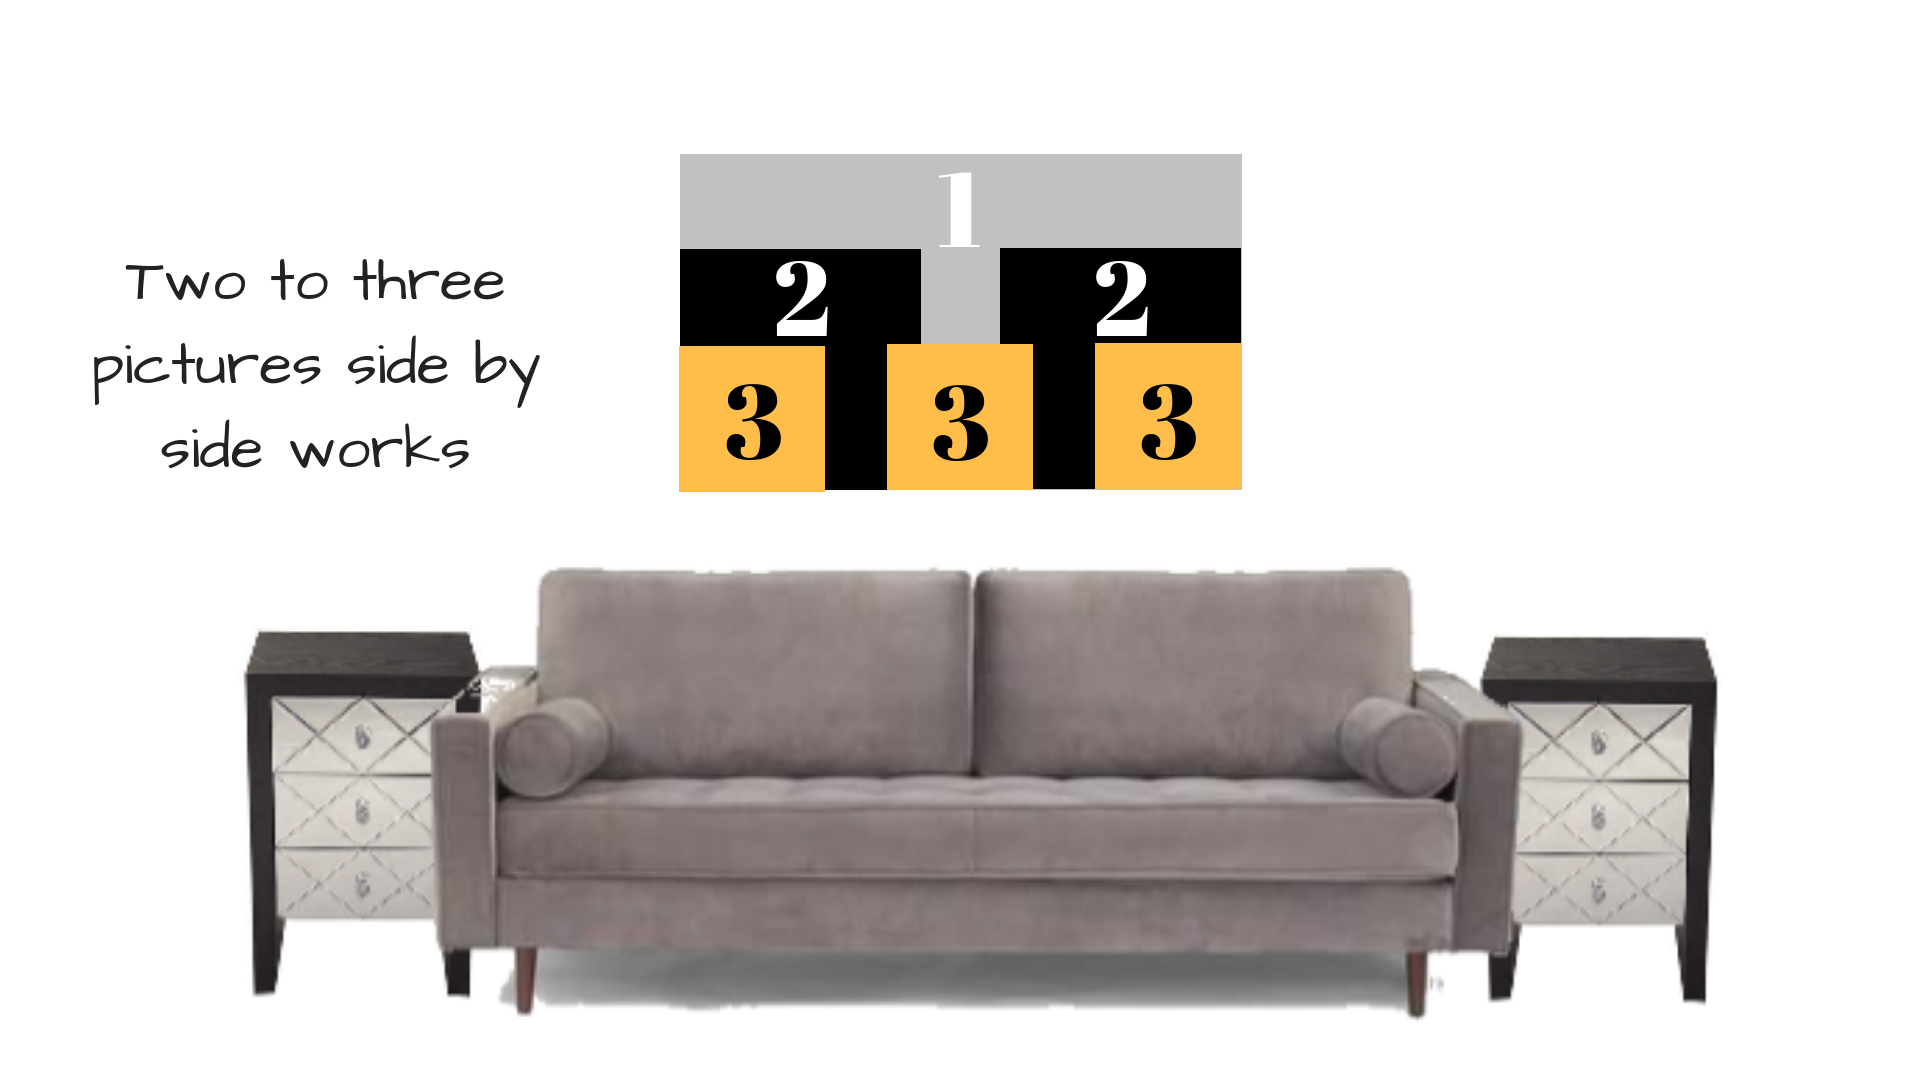 Length of Furniture Piece (3).png